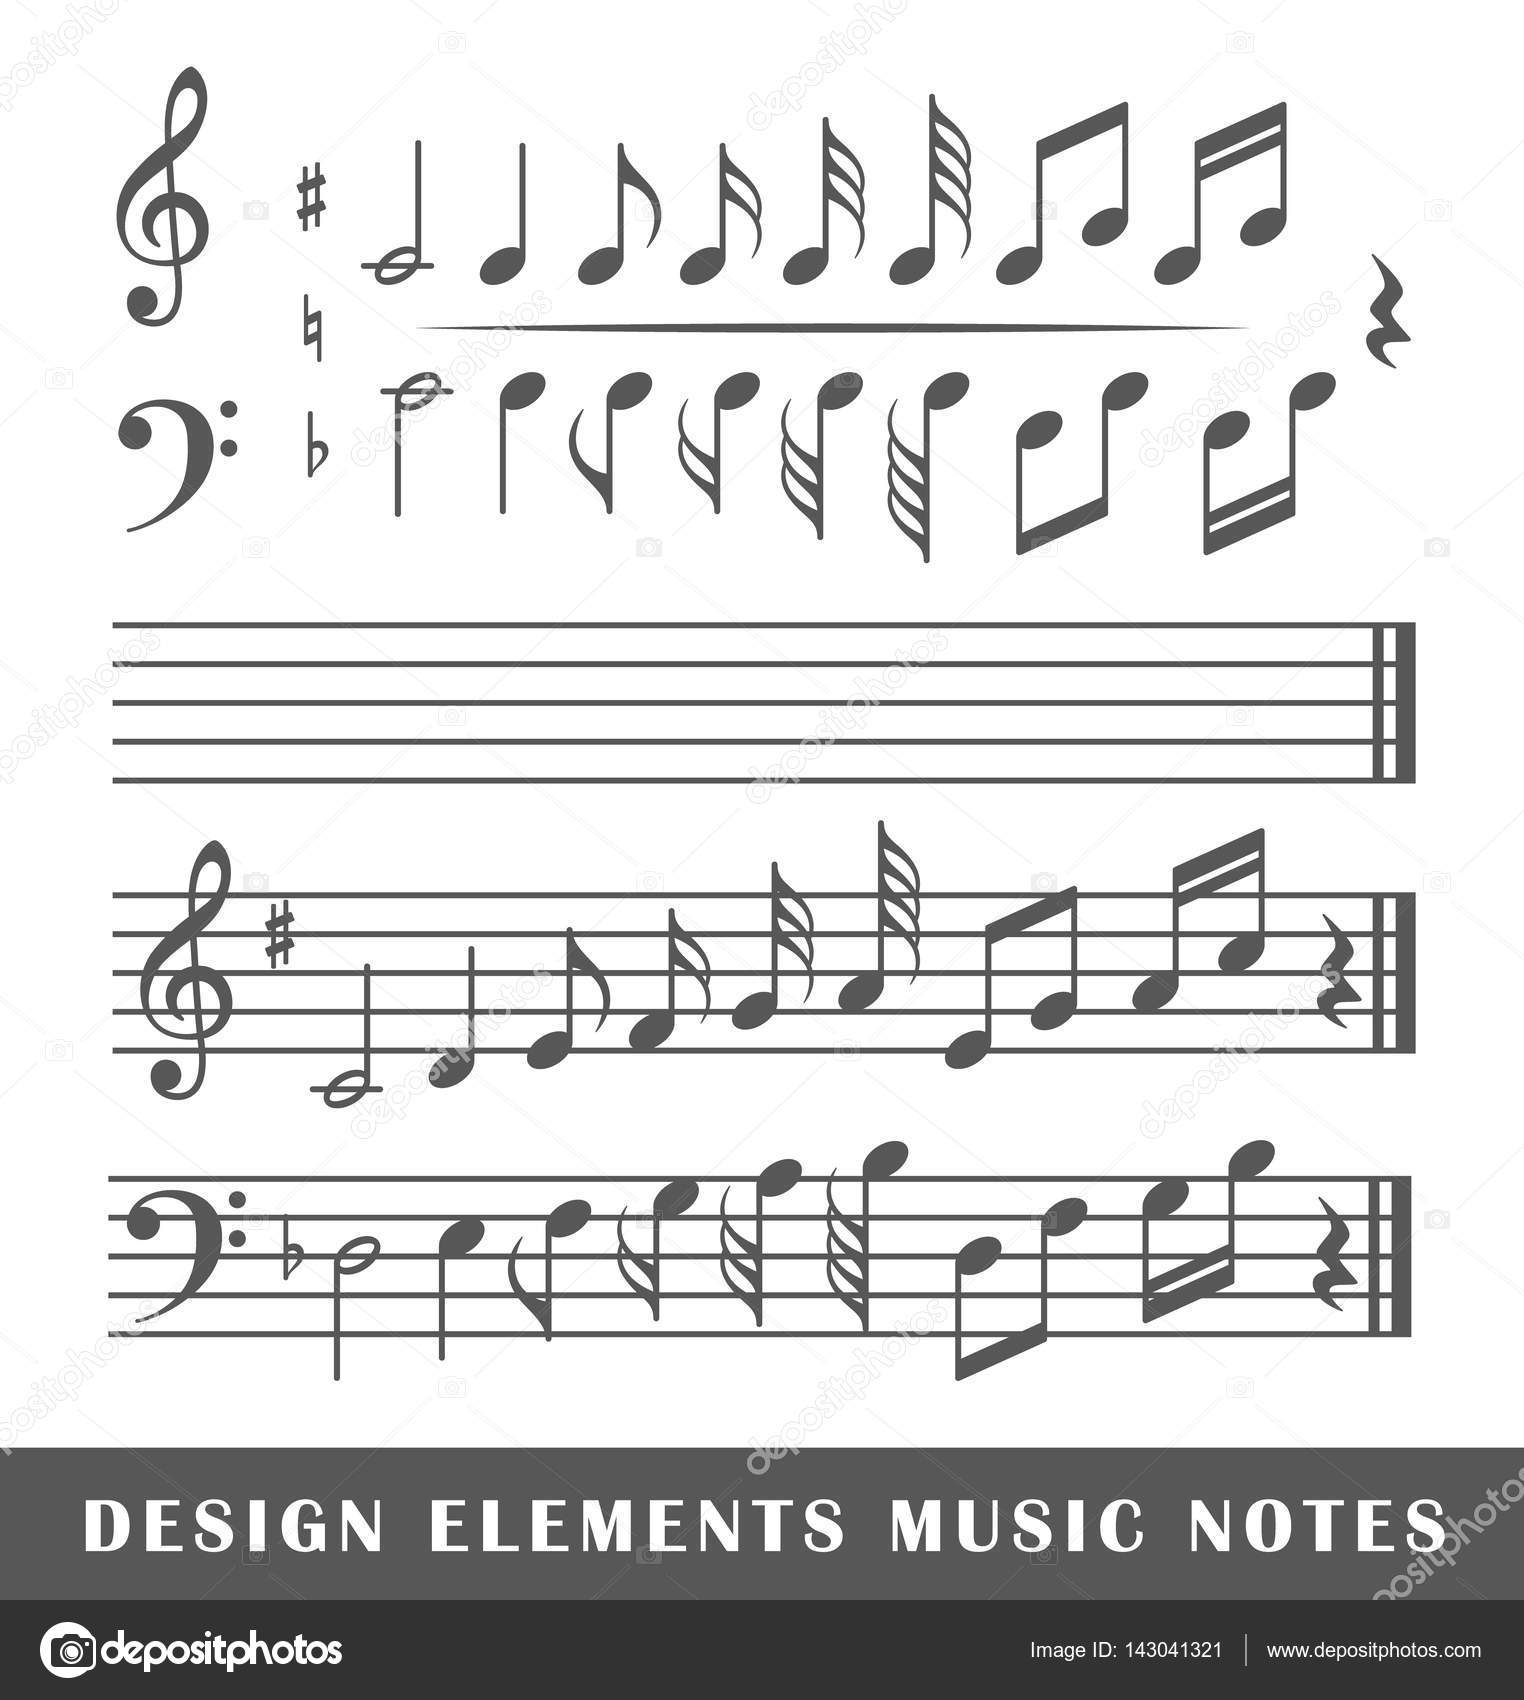 Musical notes isolated on white background stock vector musical notes isolated on white background stock vector biocorpaavc Gallery